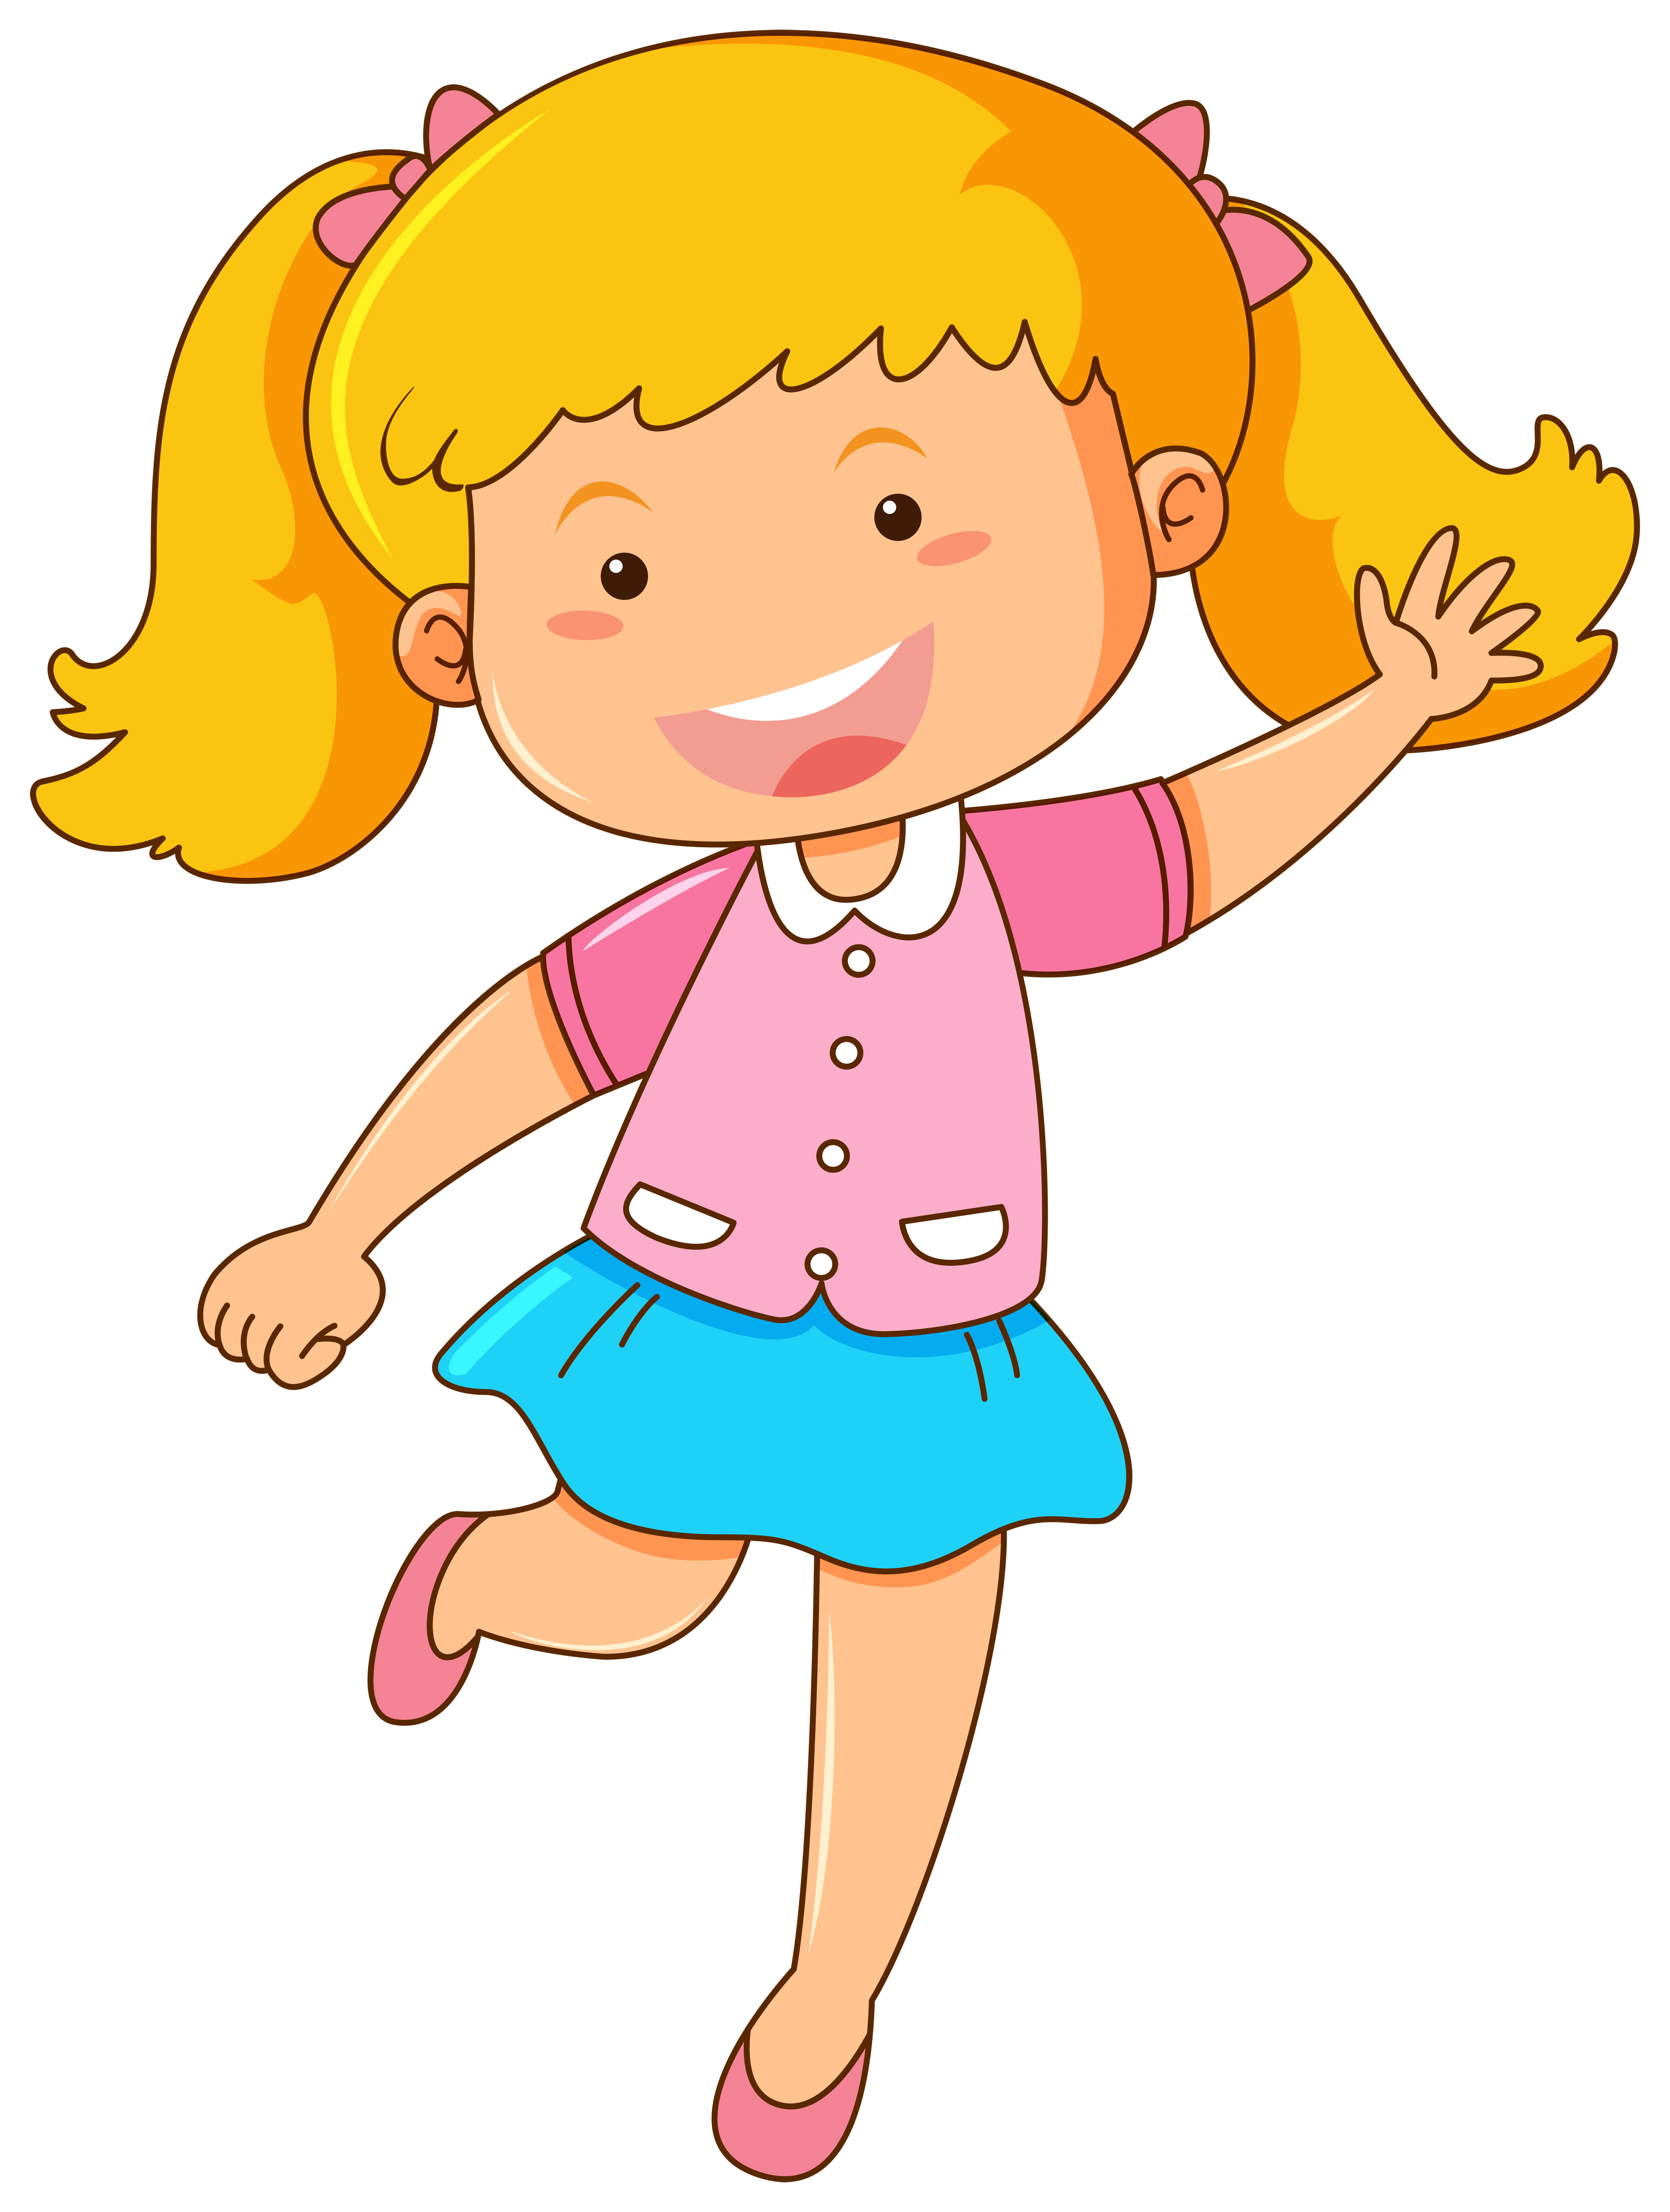 Little girl with happy smile - Download Free Vectors ...